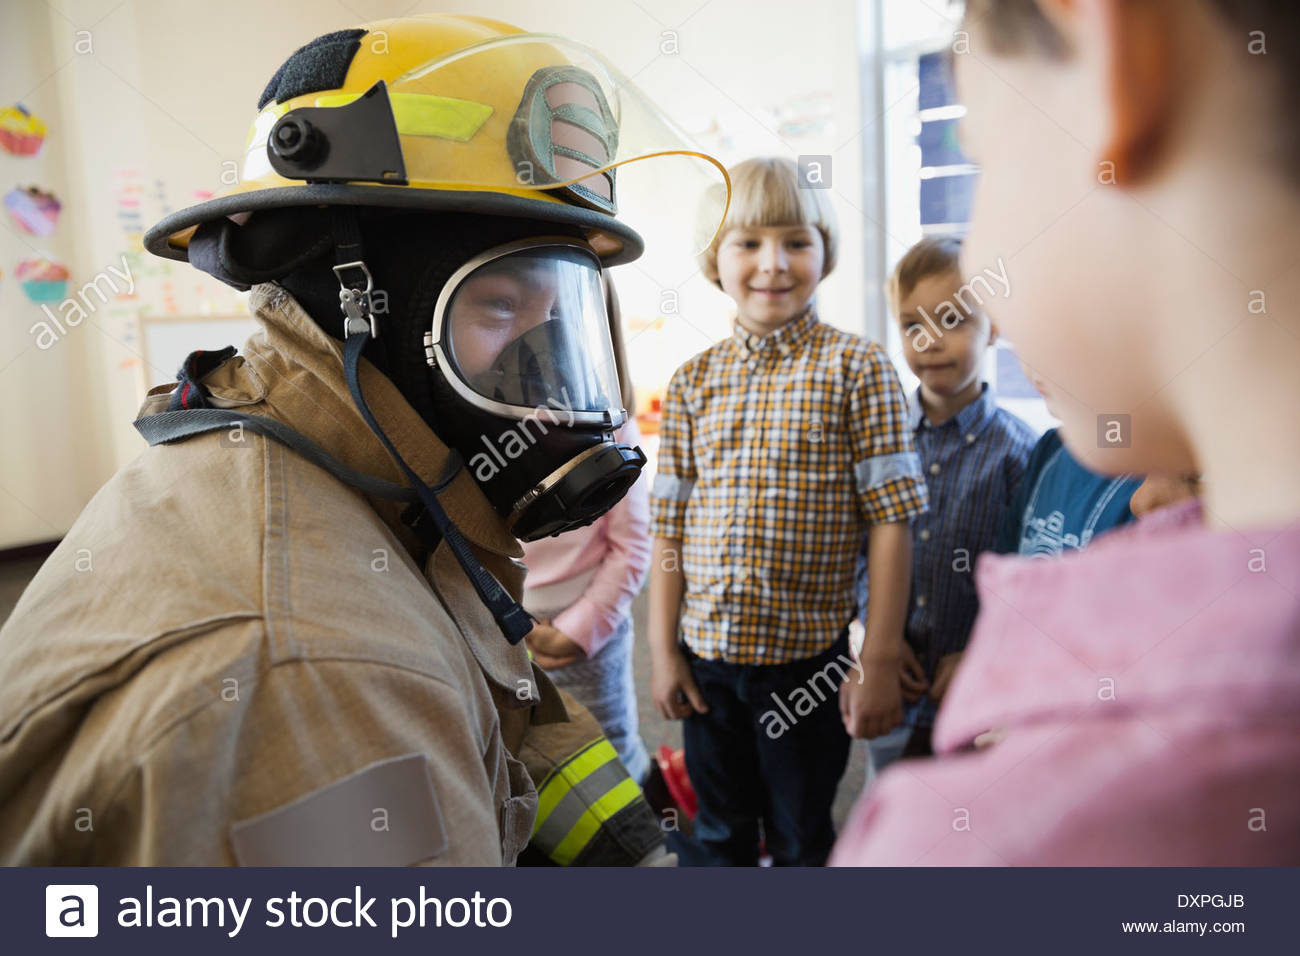 Firefighter giving presentation to elemetary children - Stock Image